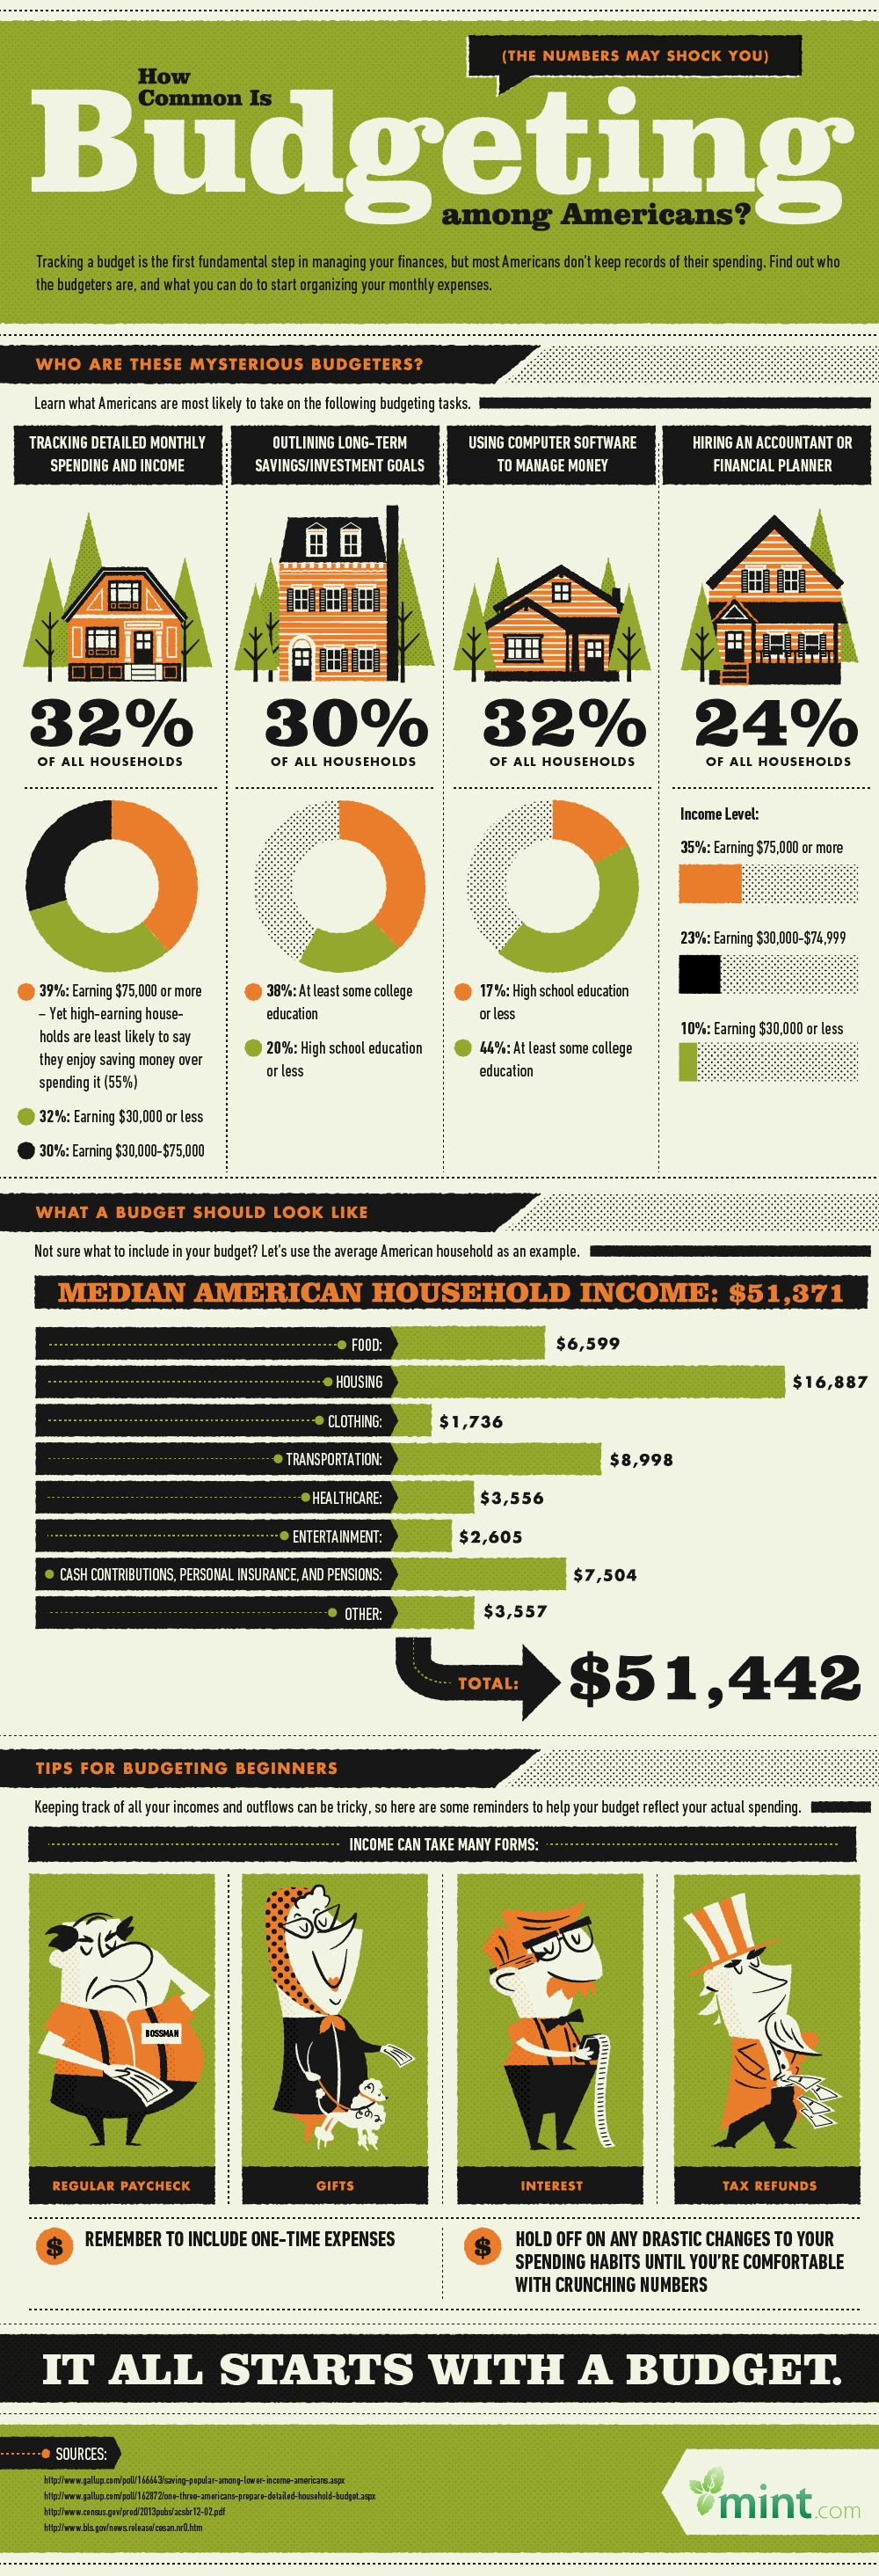 How Common Is Budgeting For Americans? [infographic]